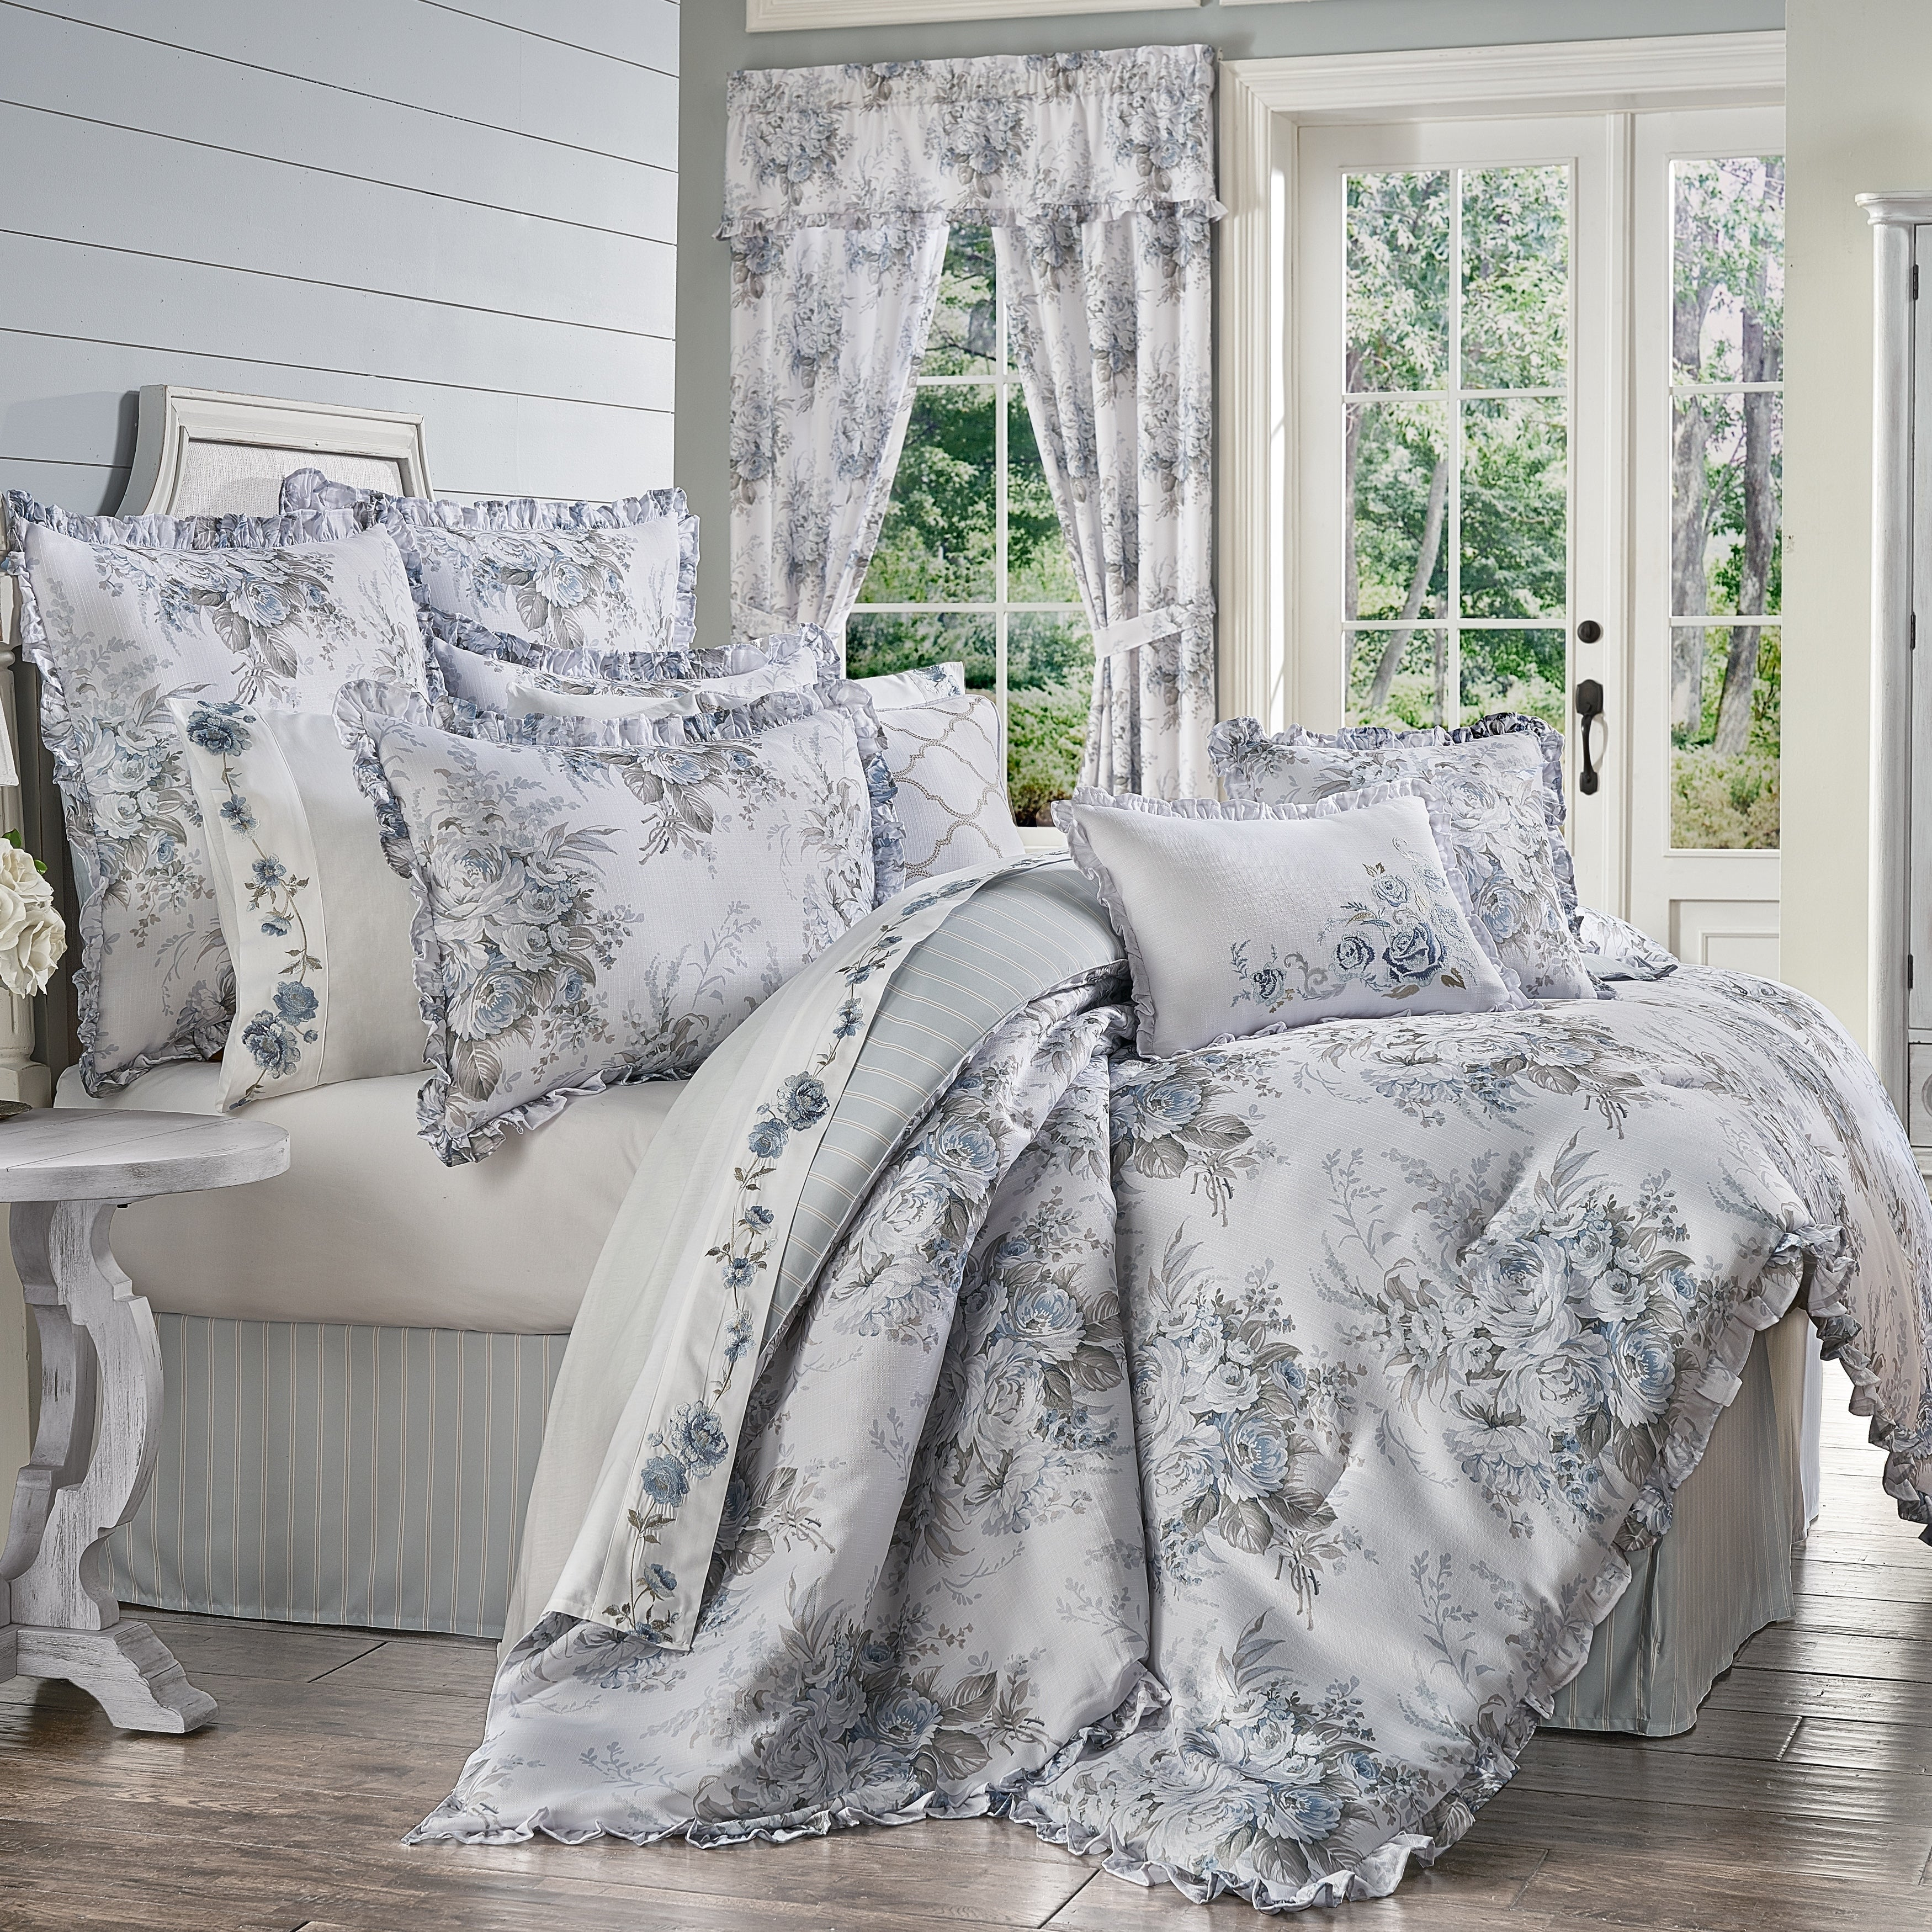 The Gray Barn Morning Star Farmhouse Floral Comforter Set Overstock 29083215